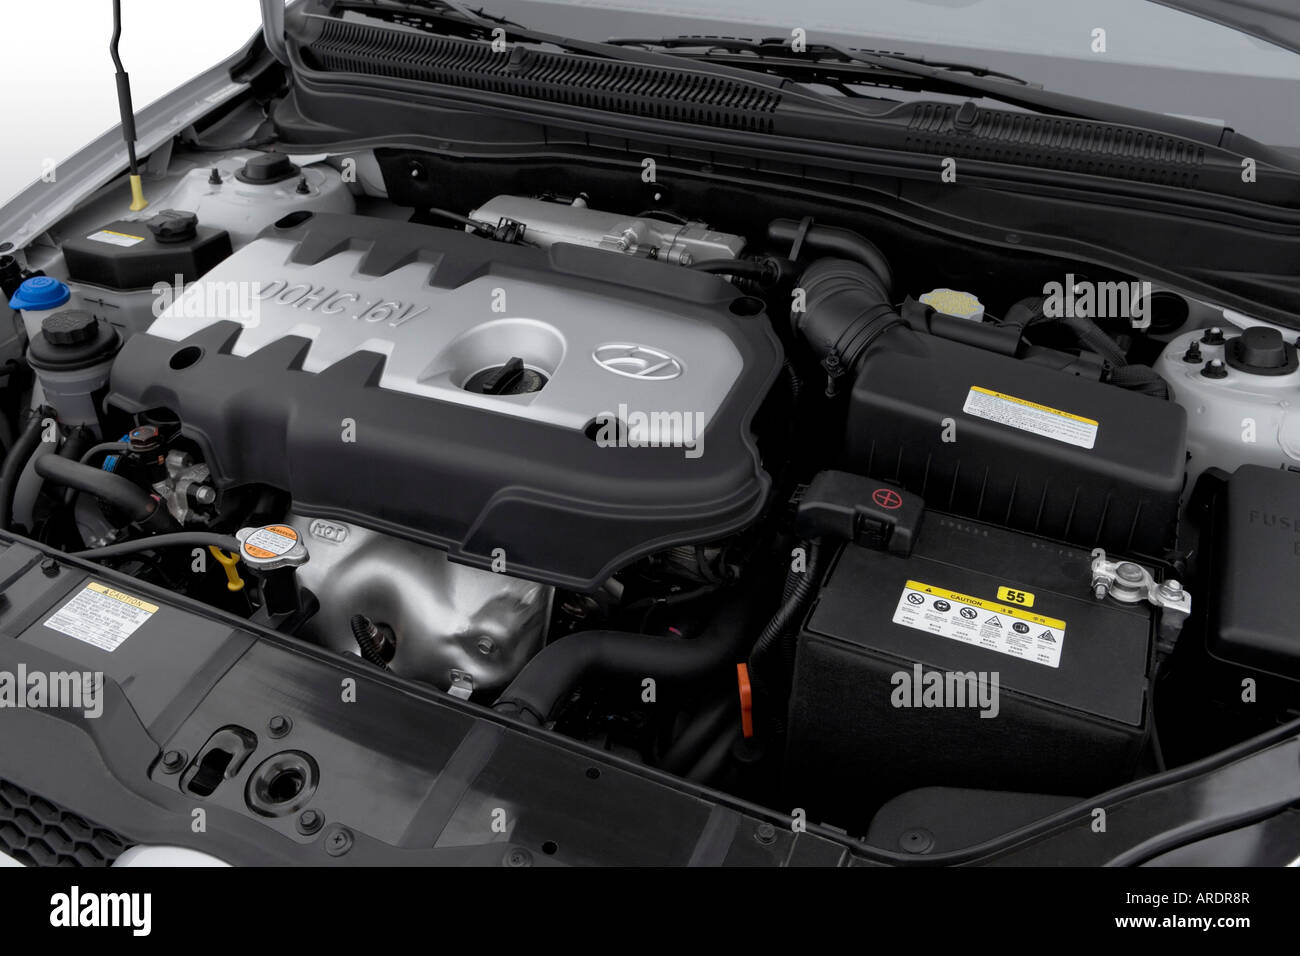 2007 Hyundai Accent Se In Silver Engine Stock Photo